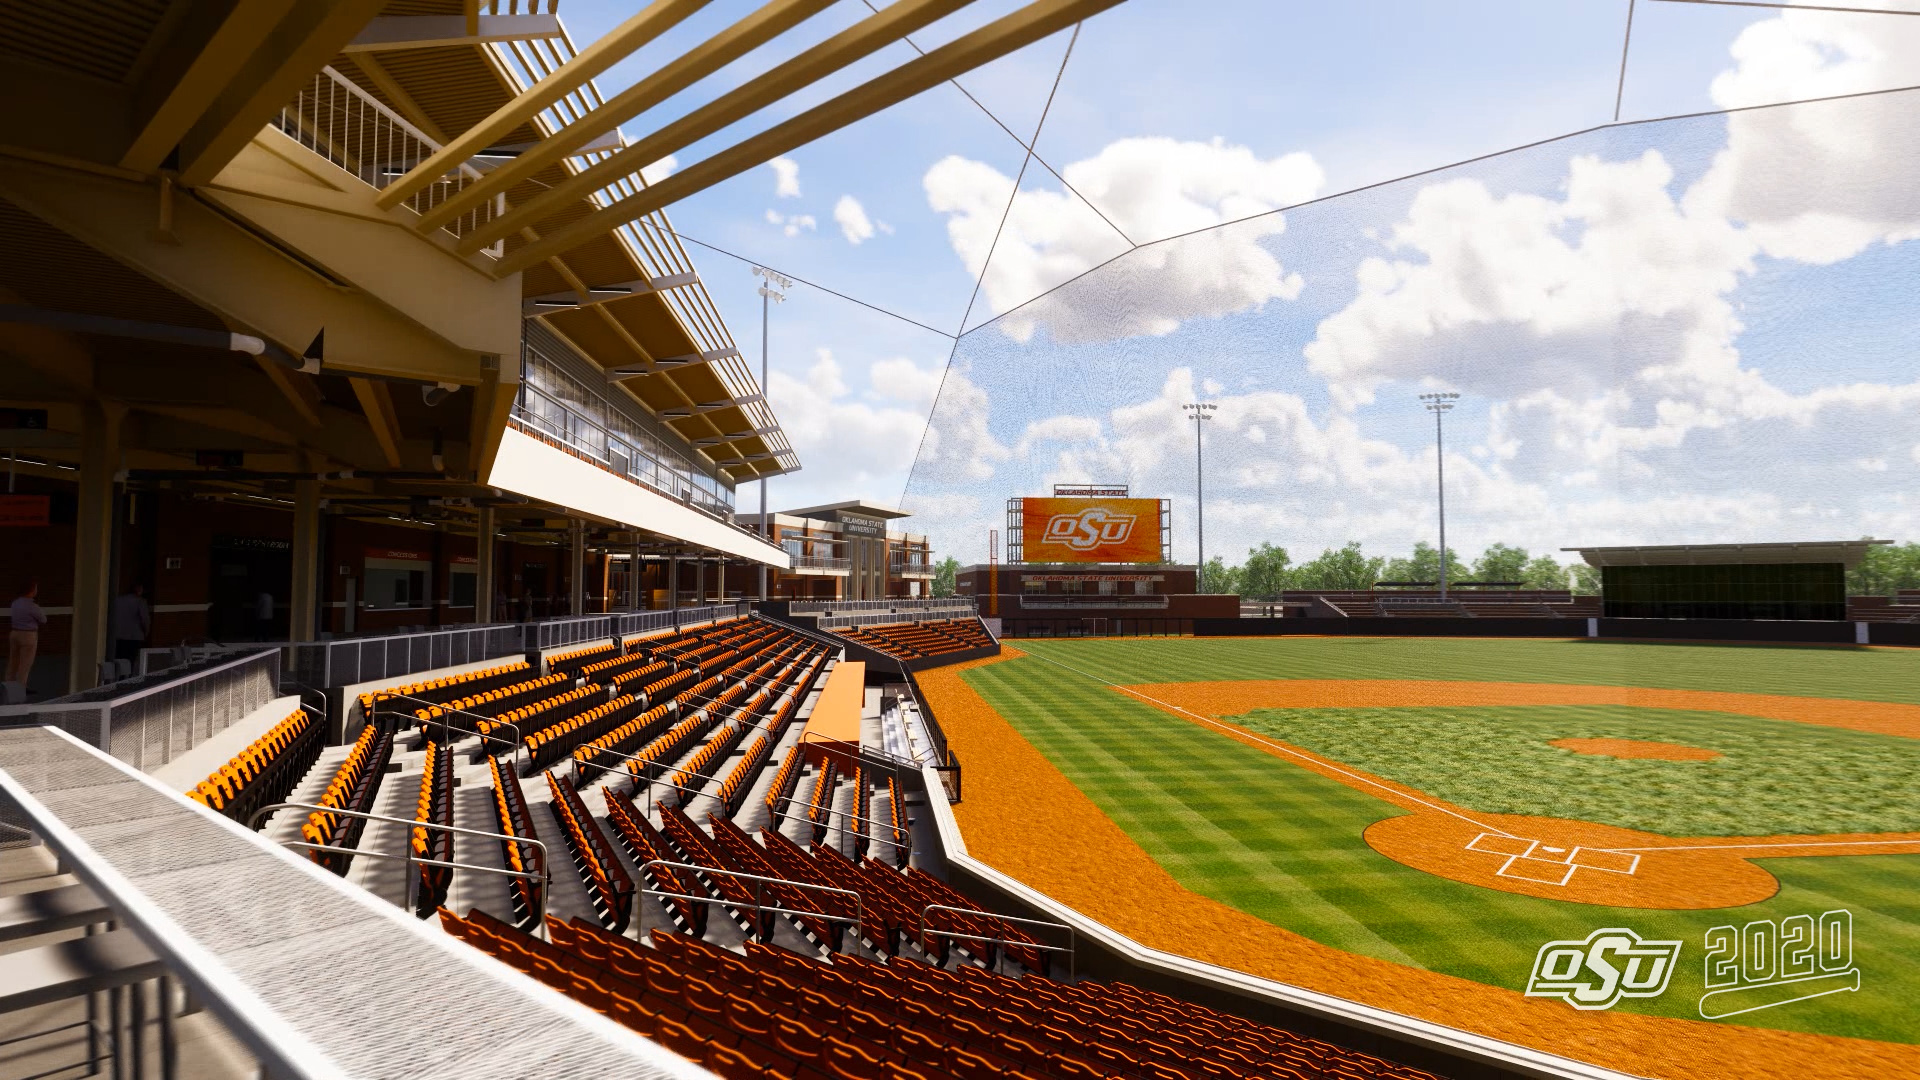 New Oklahoma State University ballpark